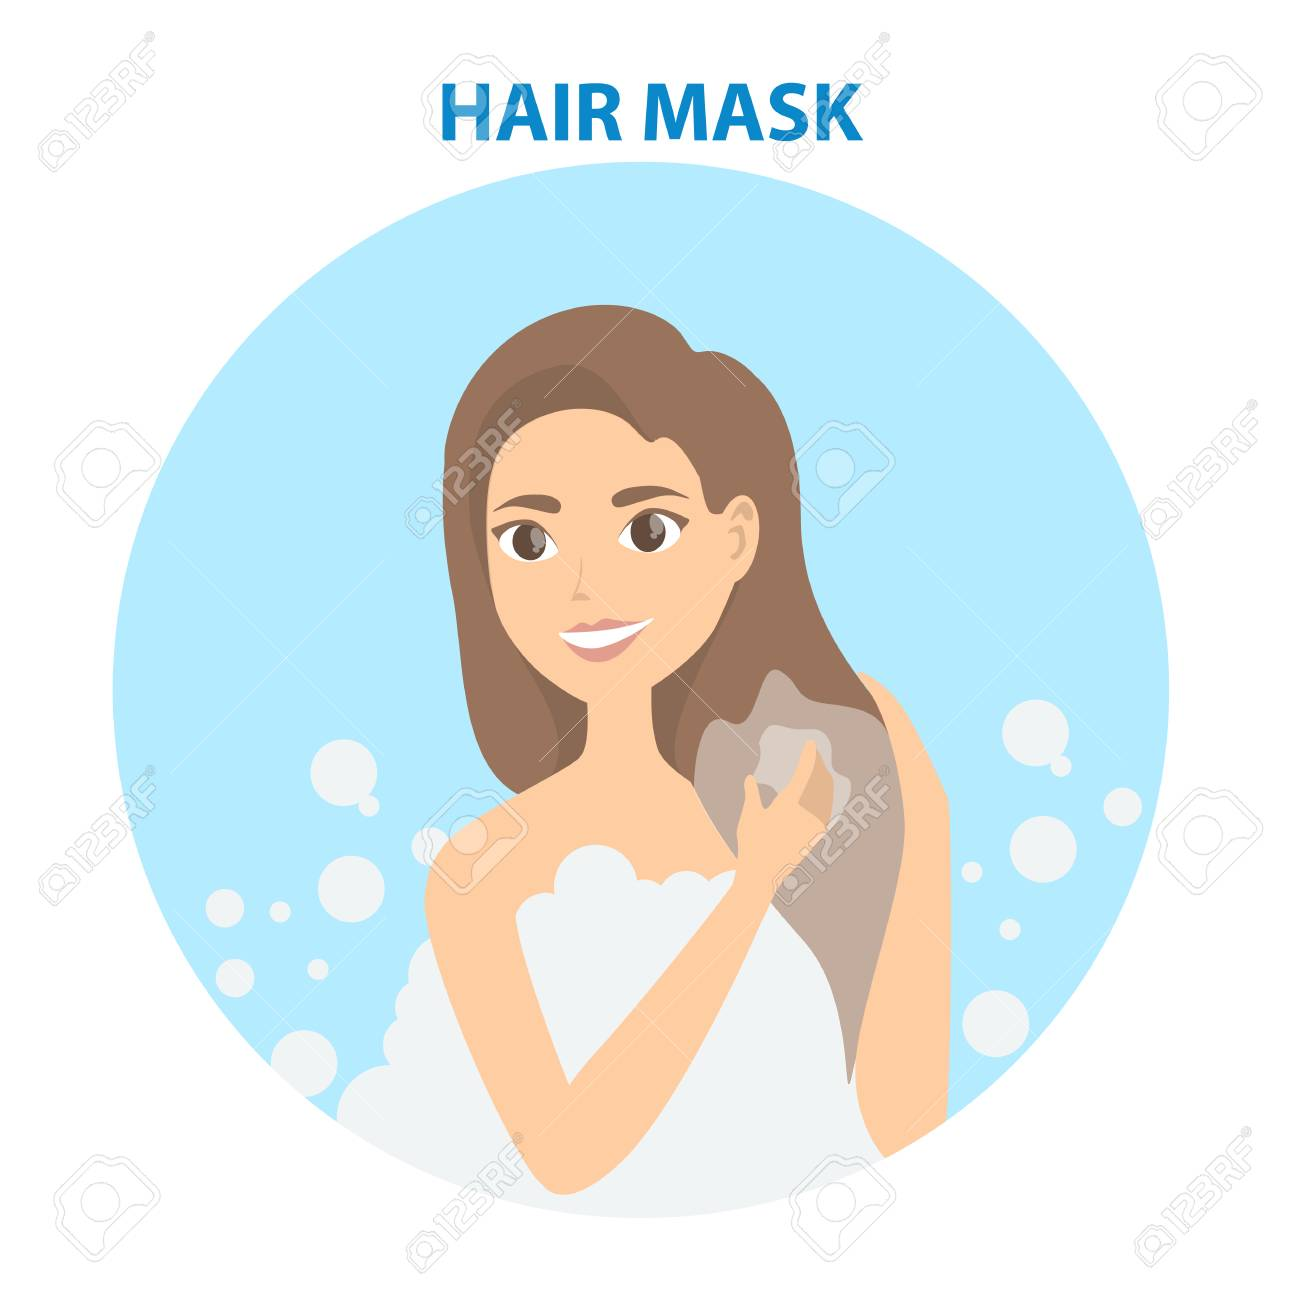 Hair Care Woman Applying Hair Mask On White Royalty Free Cliparts Vectors And Stock Illustration Image 99502354